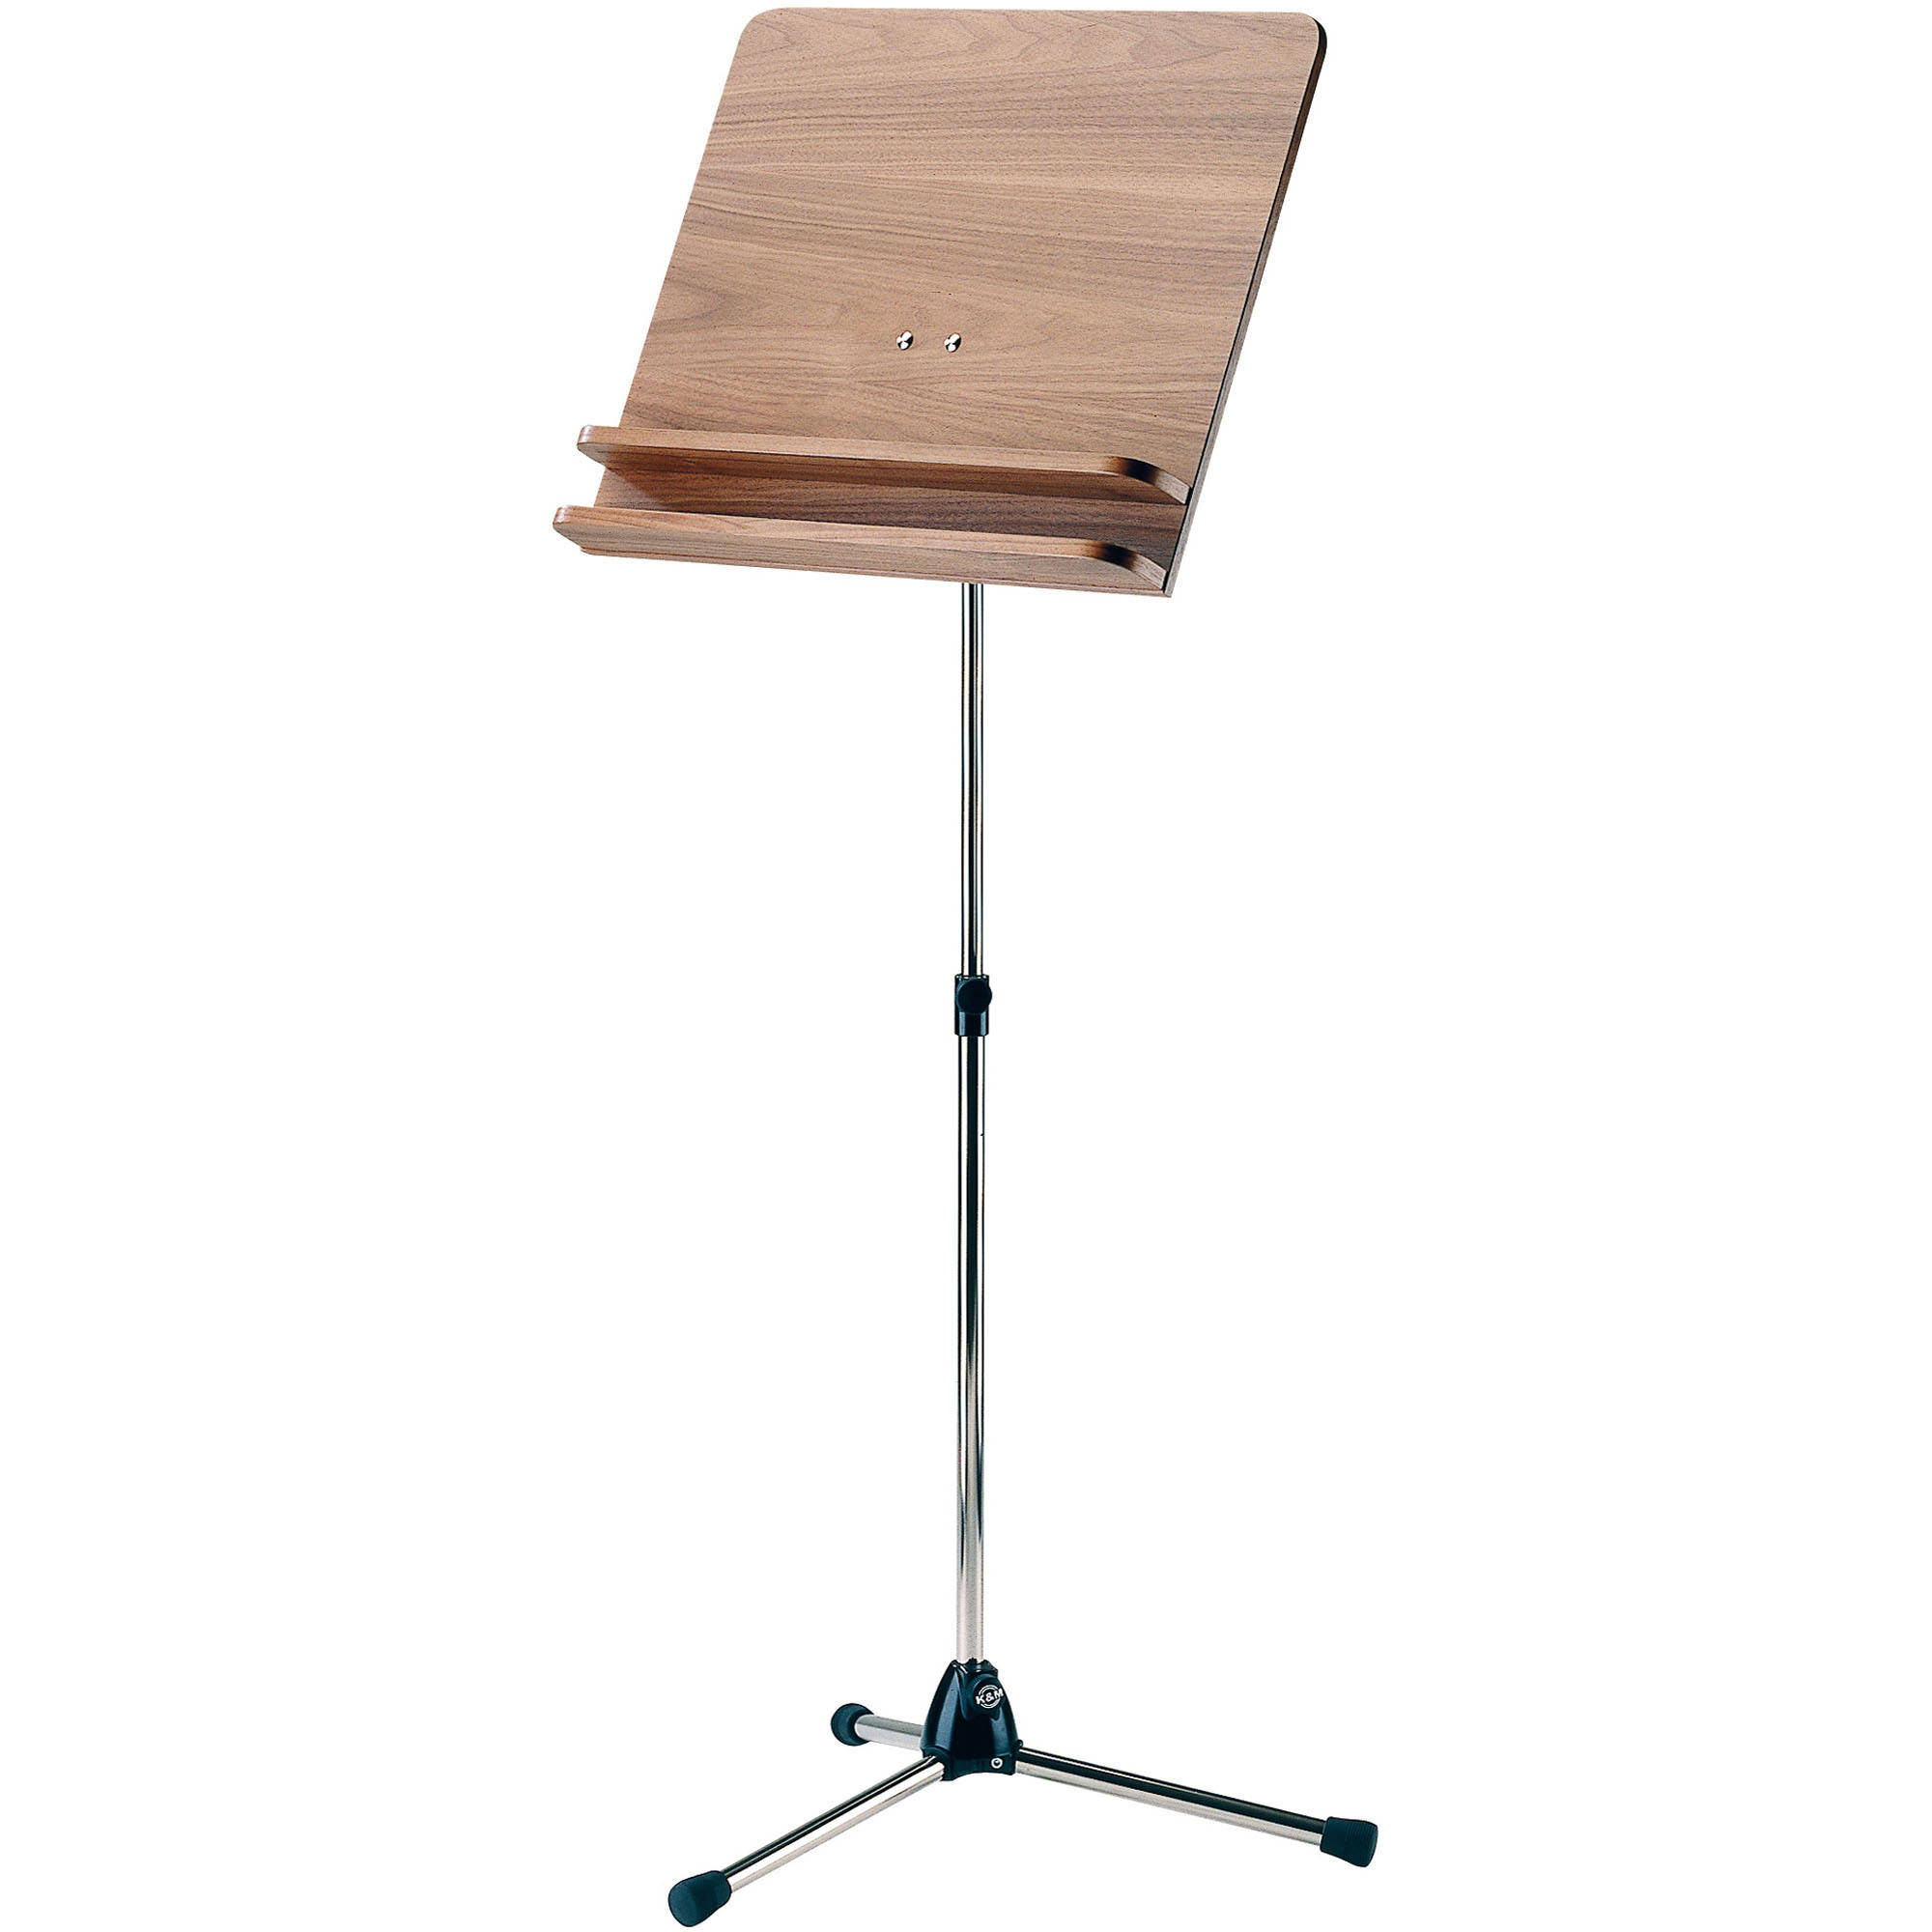 Km 1183 Orchestra Music Stand 11831 000 01 Bh Photo Video